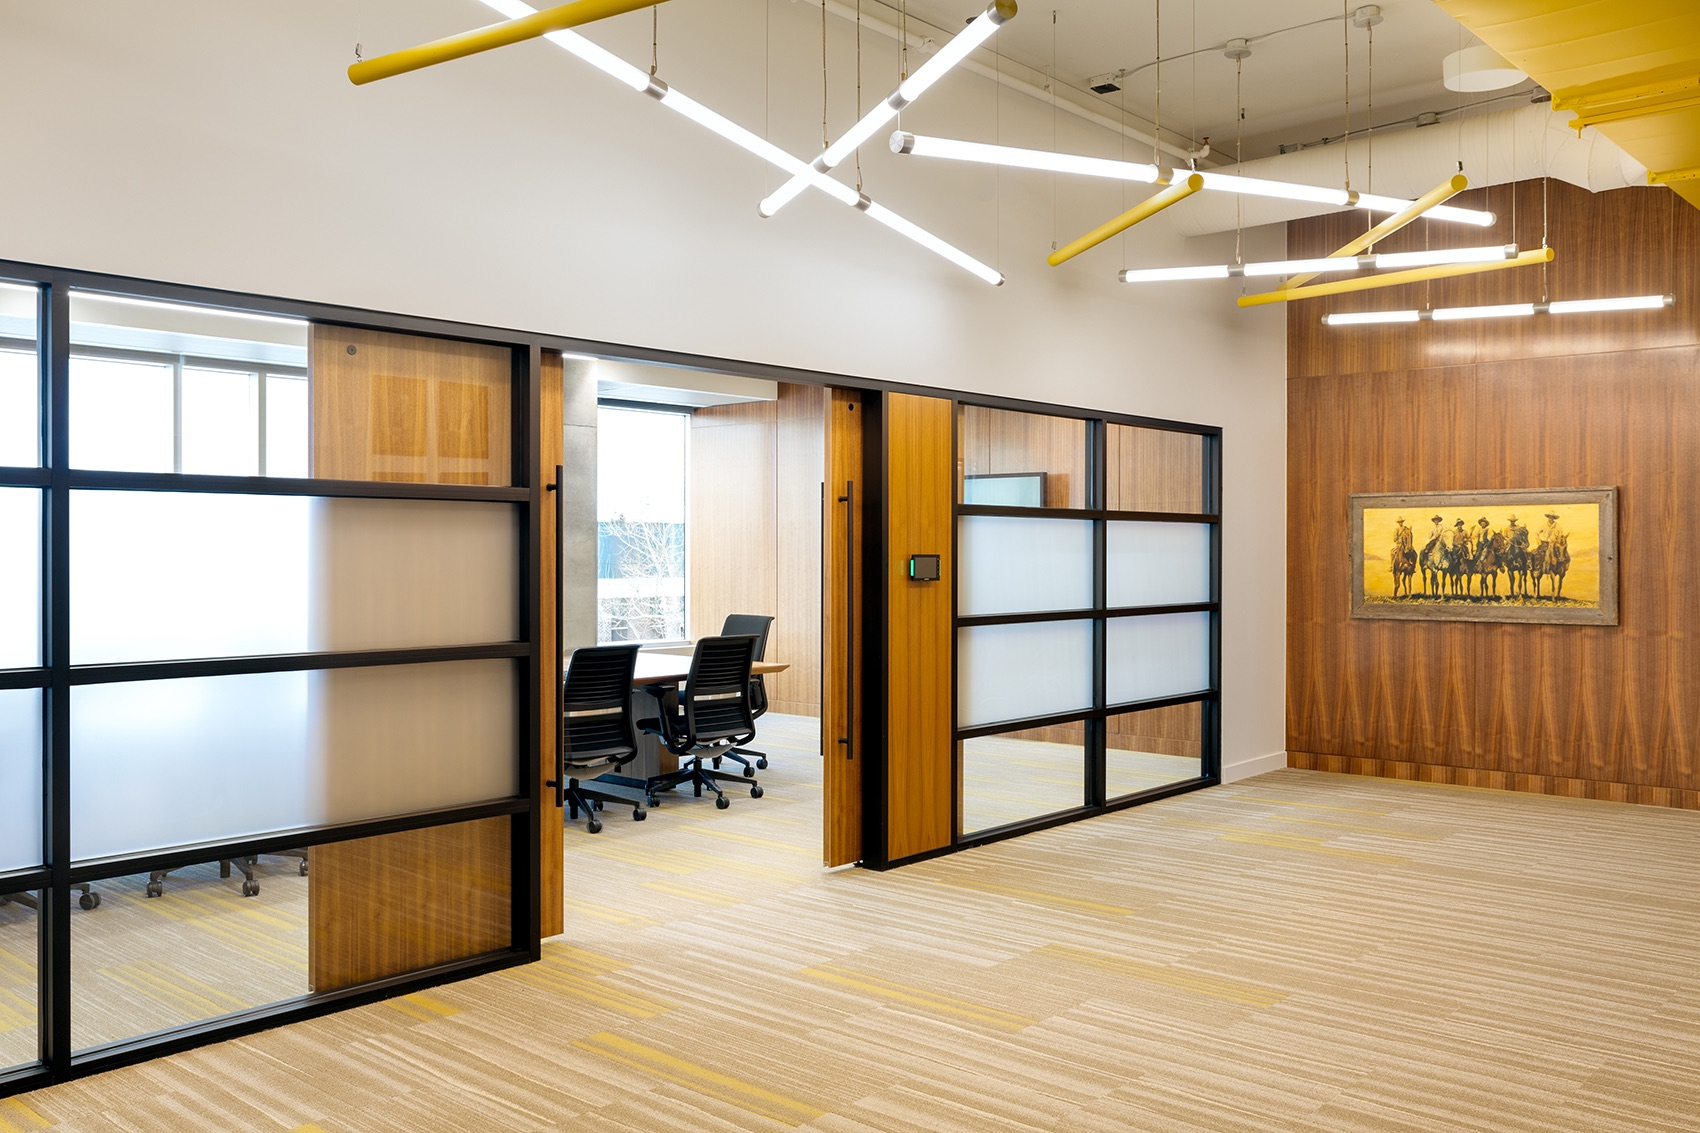 engineered-air-office-calgary-5